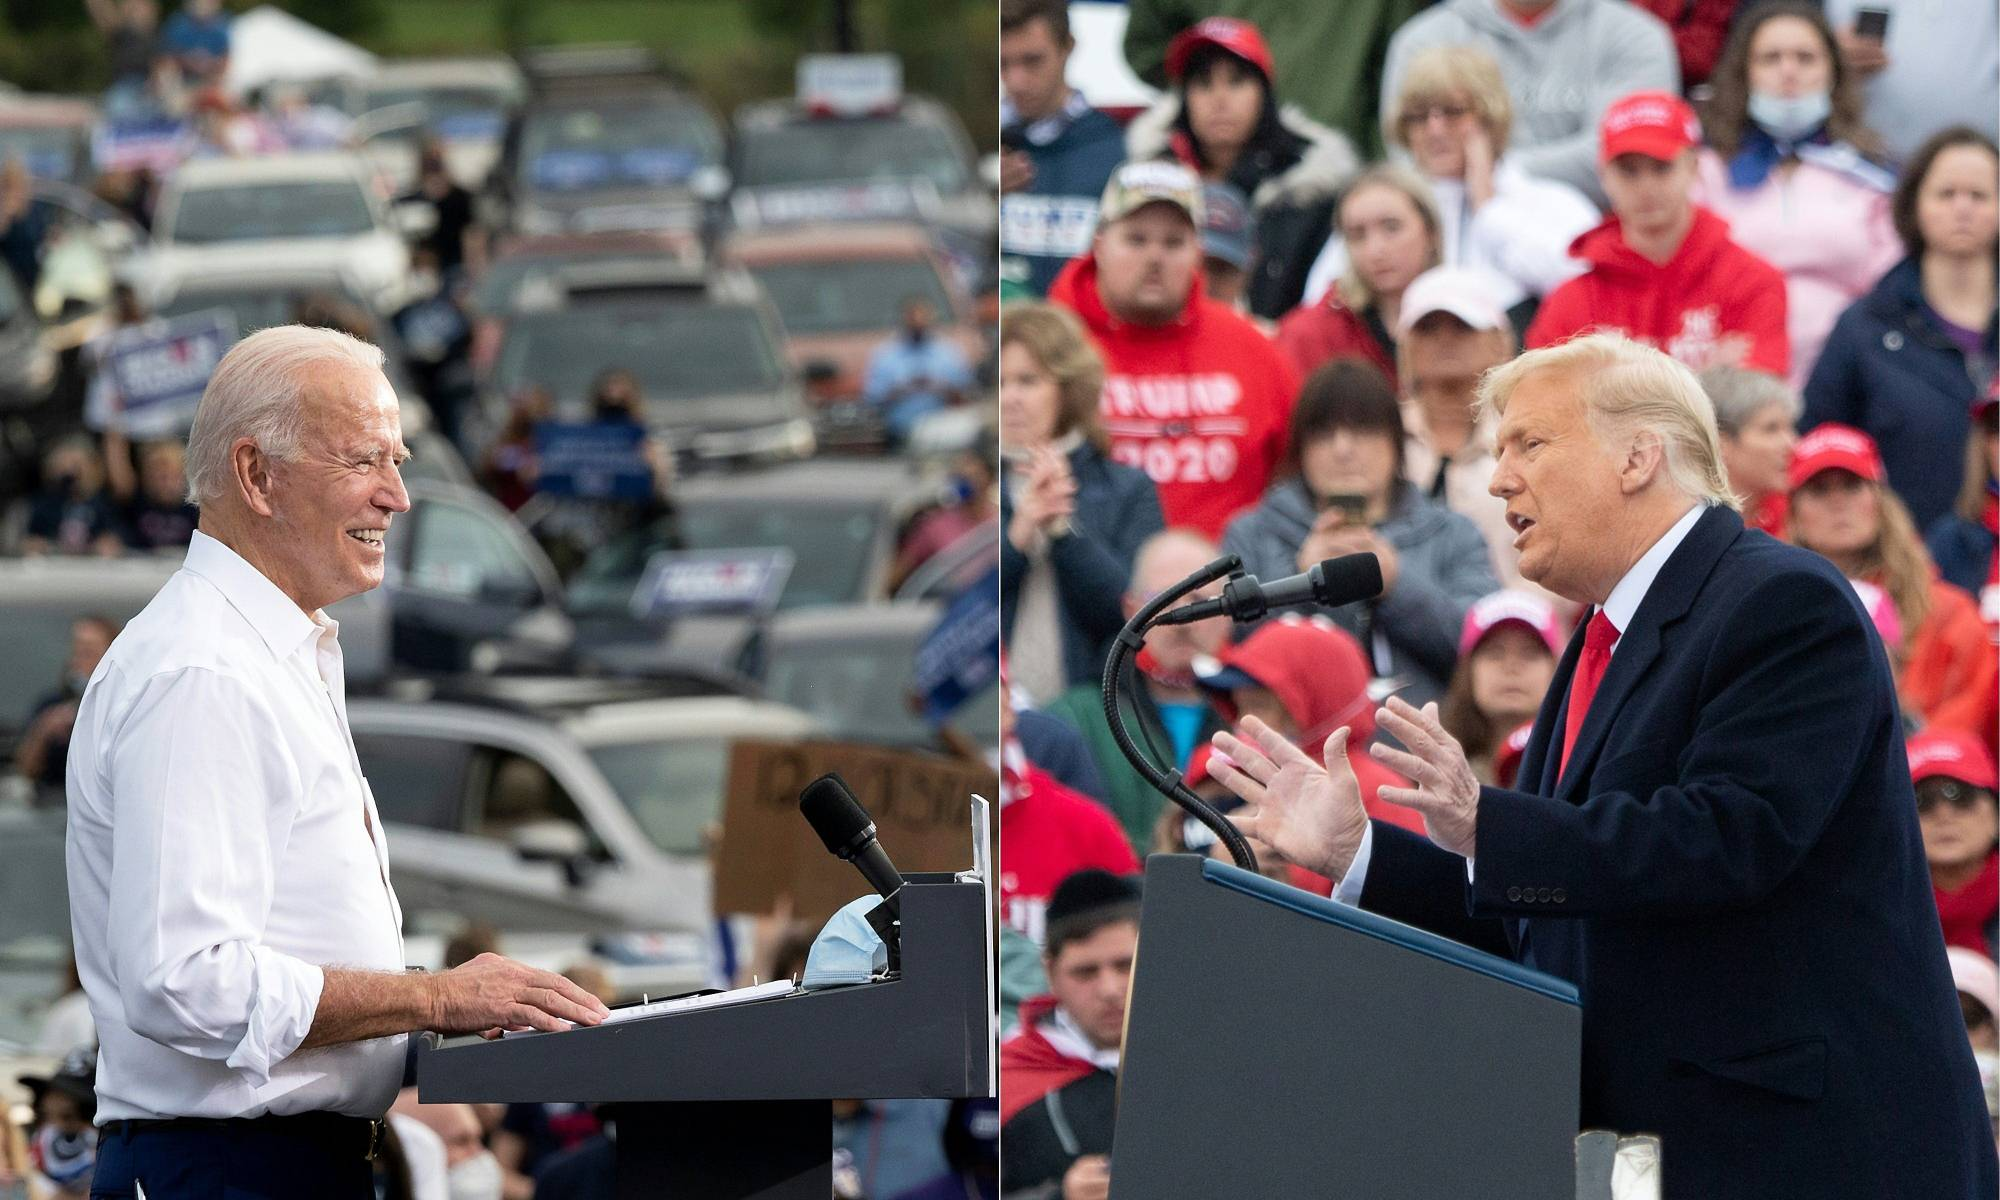 Left: Democratic U.S. presidential candidate Joe Biden speaks during a voter mobilization event in Atlanta on Tuesday. Right: U.S. President Donald Trump holds a campaign rally in Lititz, Pennsylvania, on Monday. | AFP-JIJI